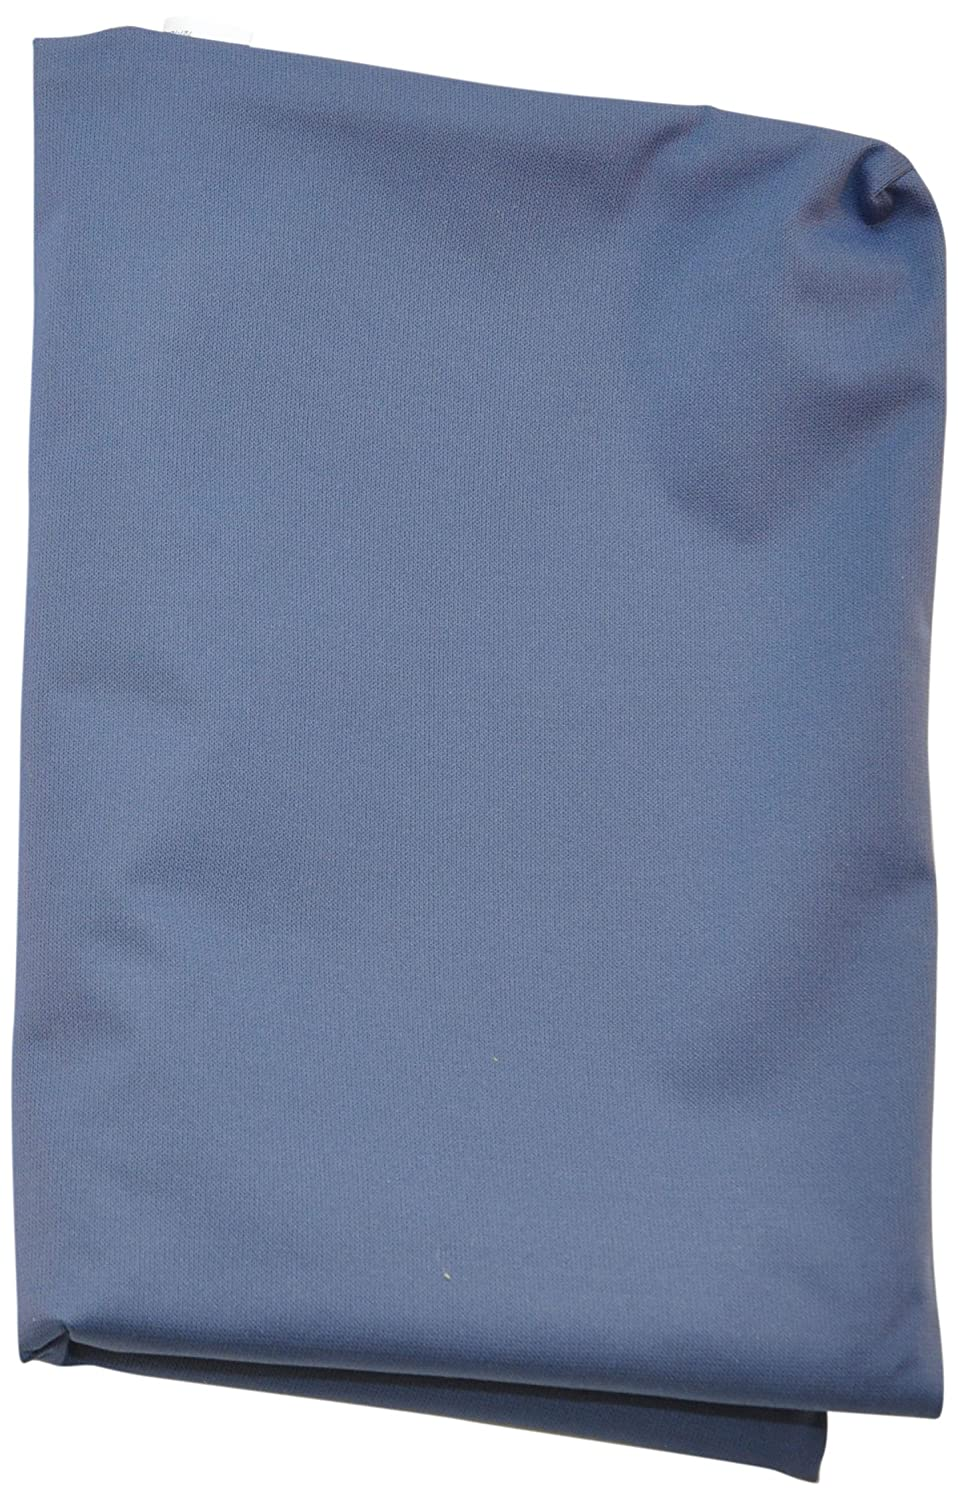 bluee Large bluee Large Pooch Pad Large Extra Dog Bed Cover, bluee